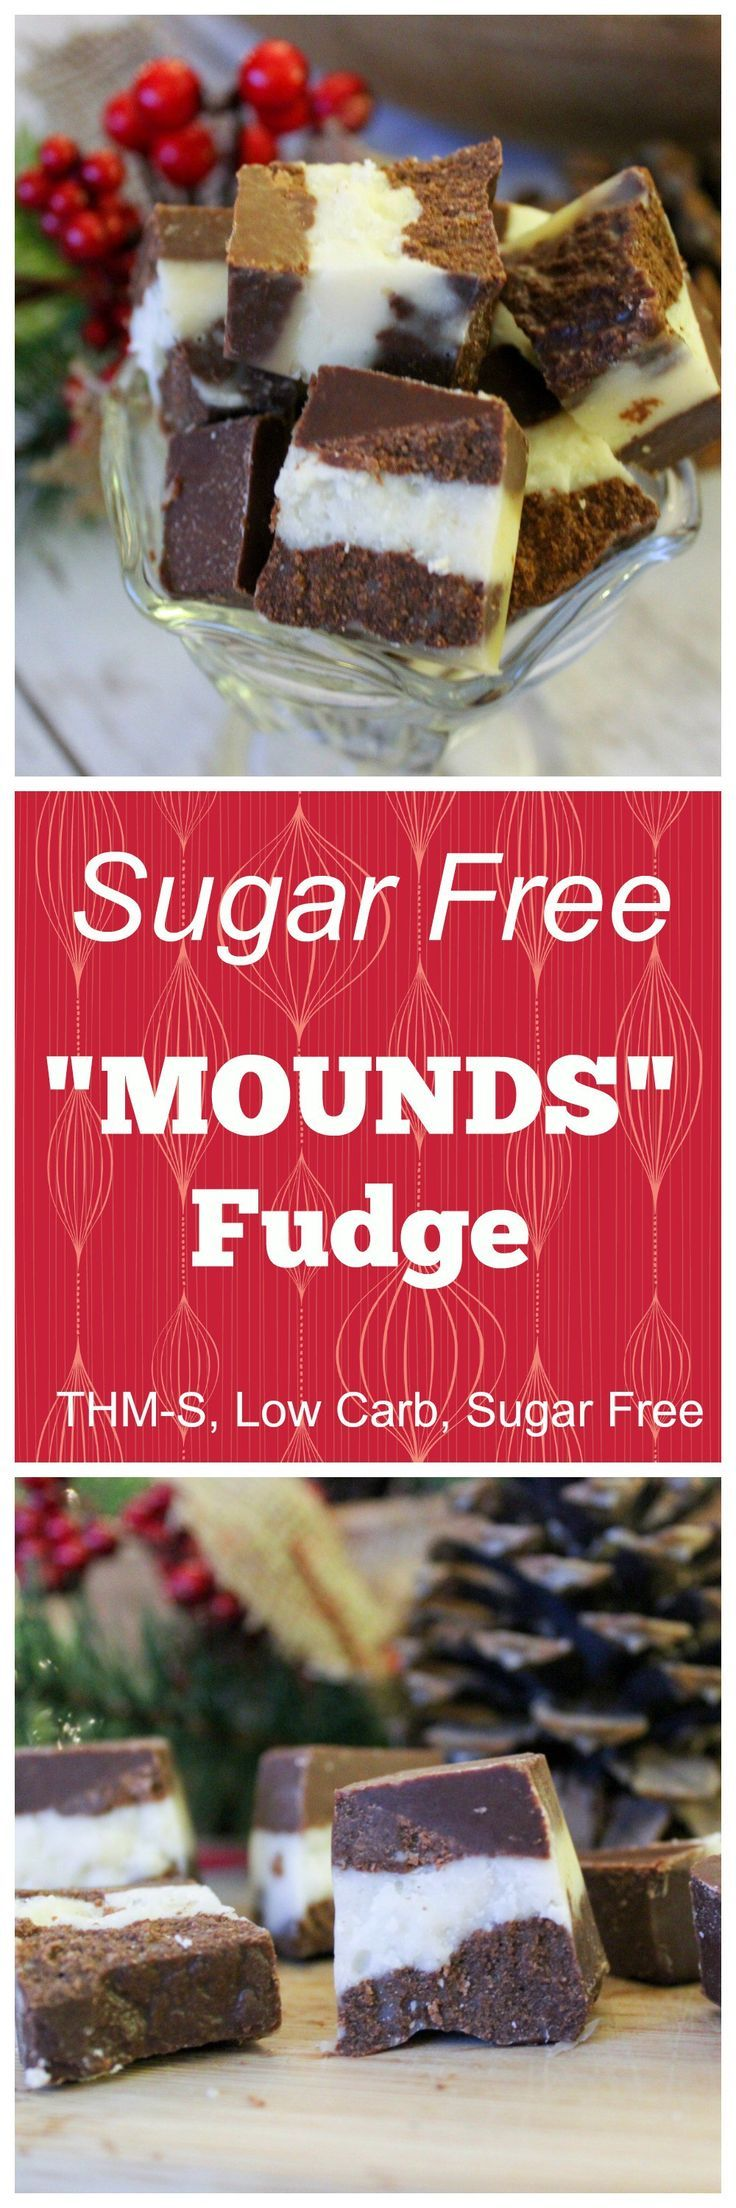 "Sugar Free ""Mounds"" Fudge (THM-S, Low Carb, Sugar Free)"